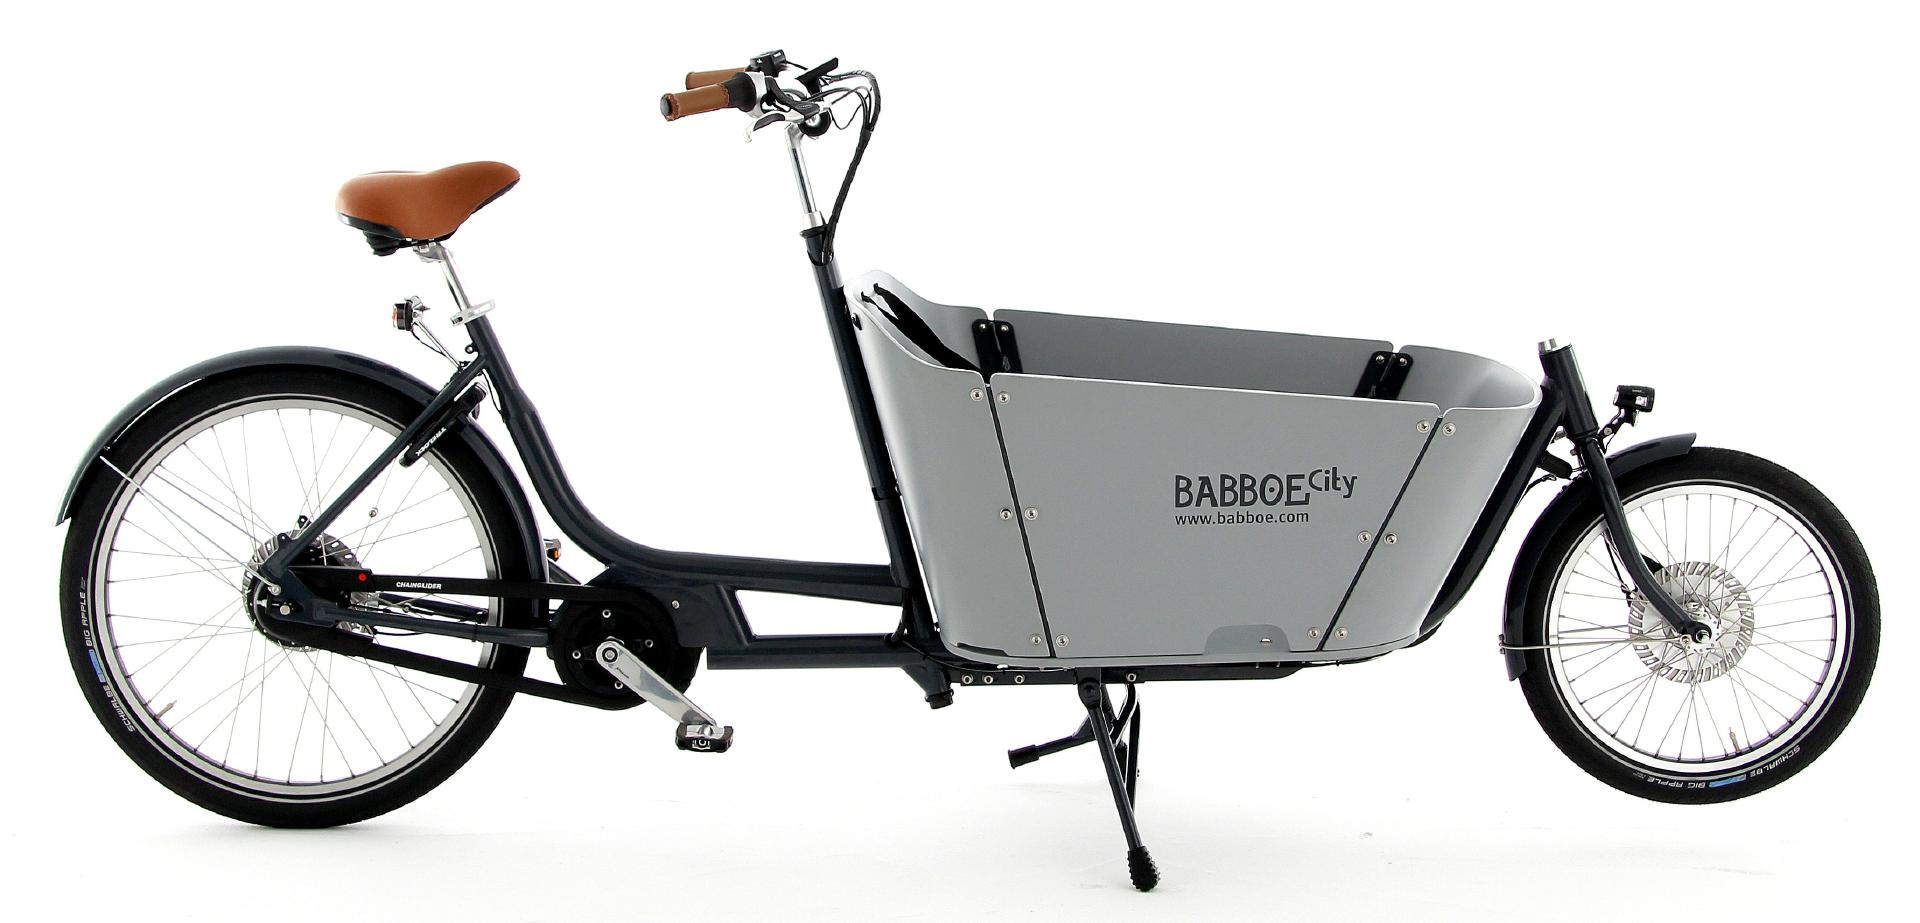 babboe city mountain lasten e bike jetzt probefahren. Black Bedroom Furniture Sets. Home Design Ideas